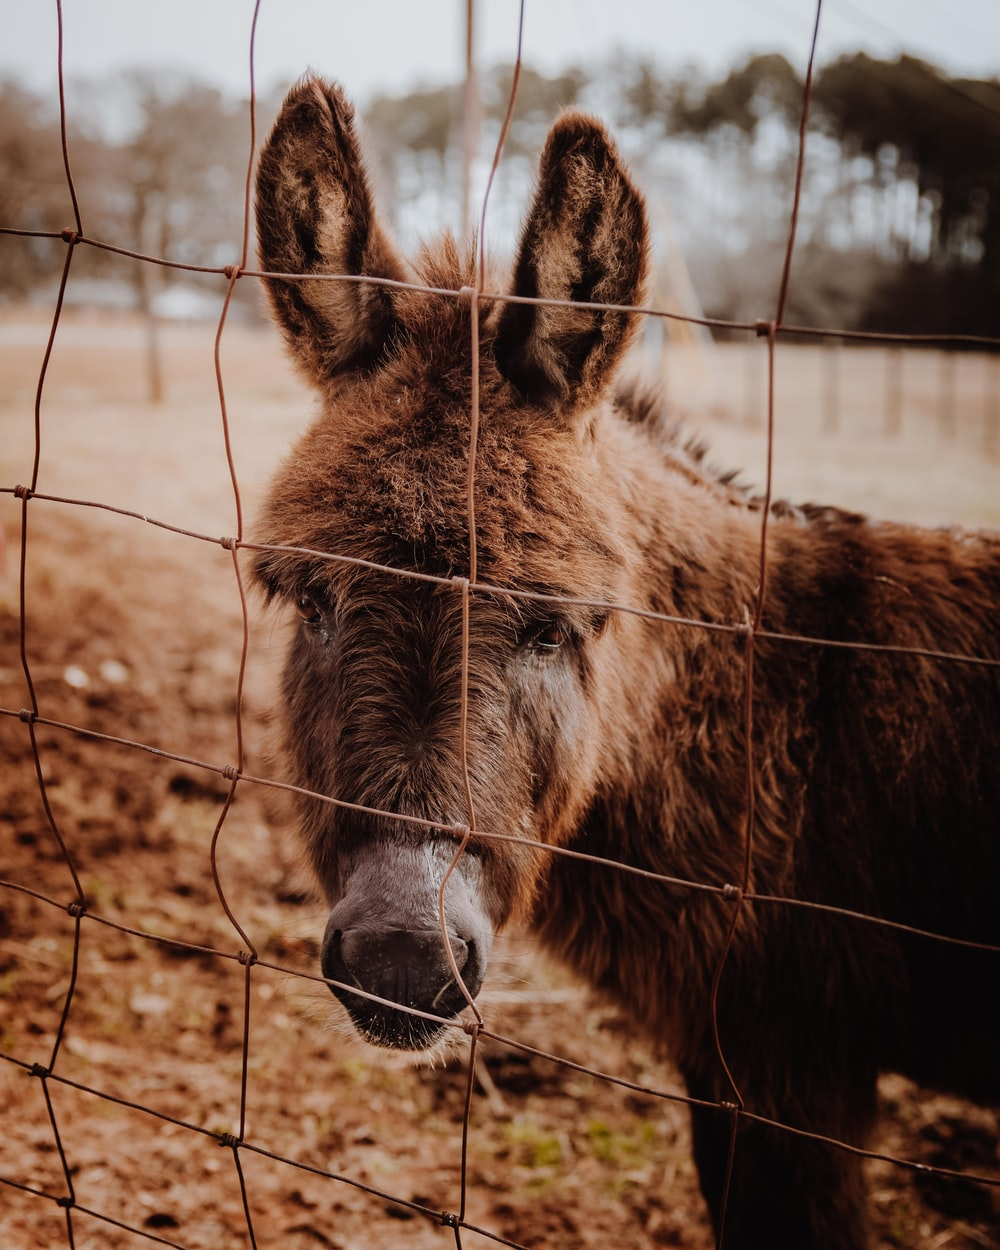 brown horse in cage during daytime